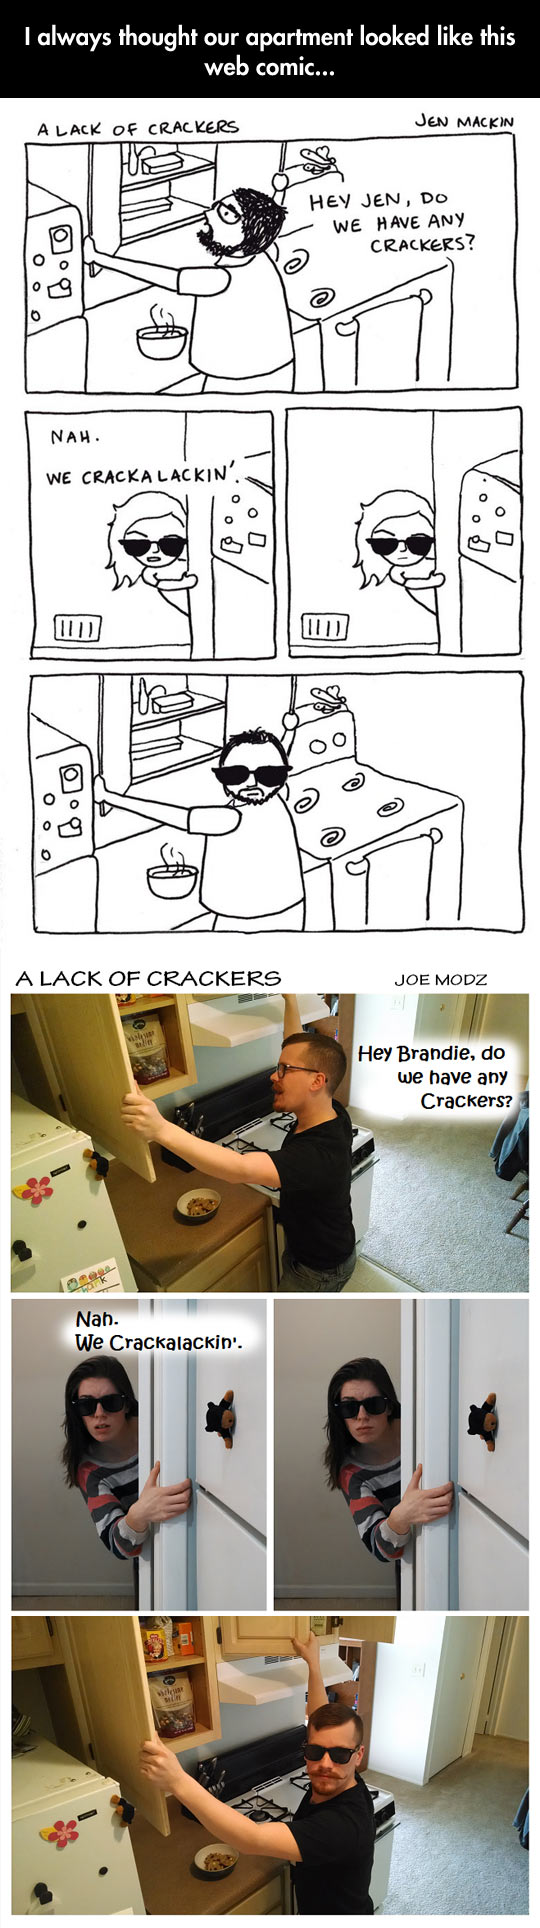 funny-kitchen-couple-crackers-comic